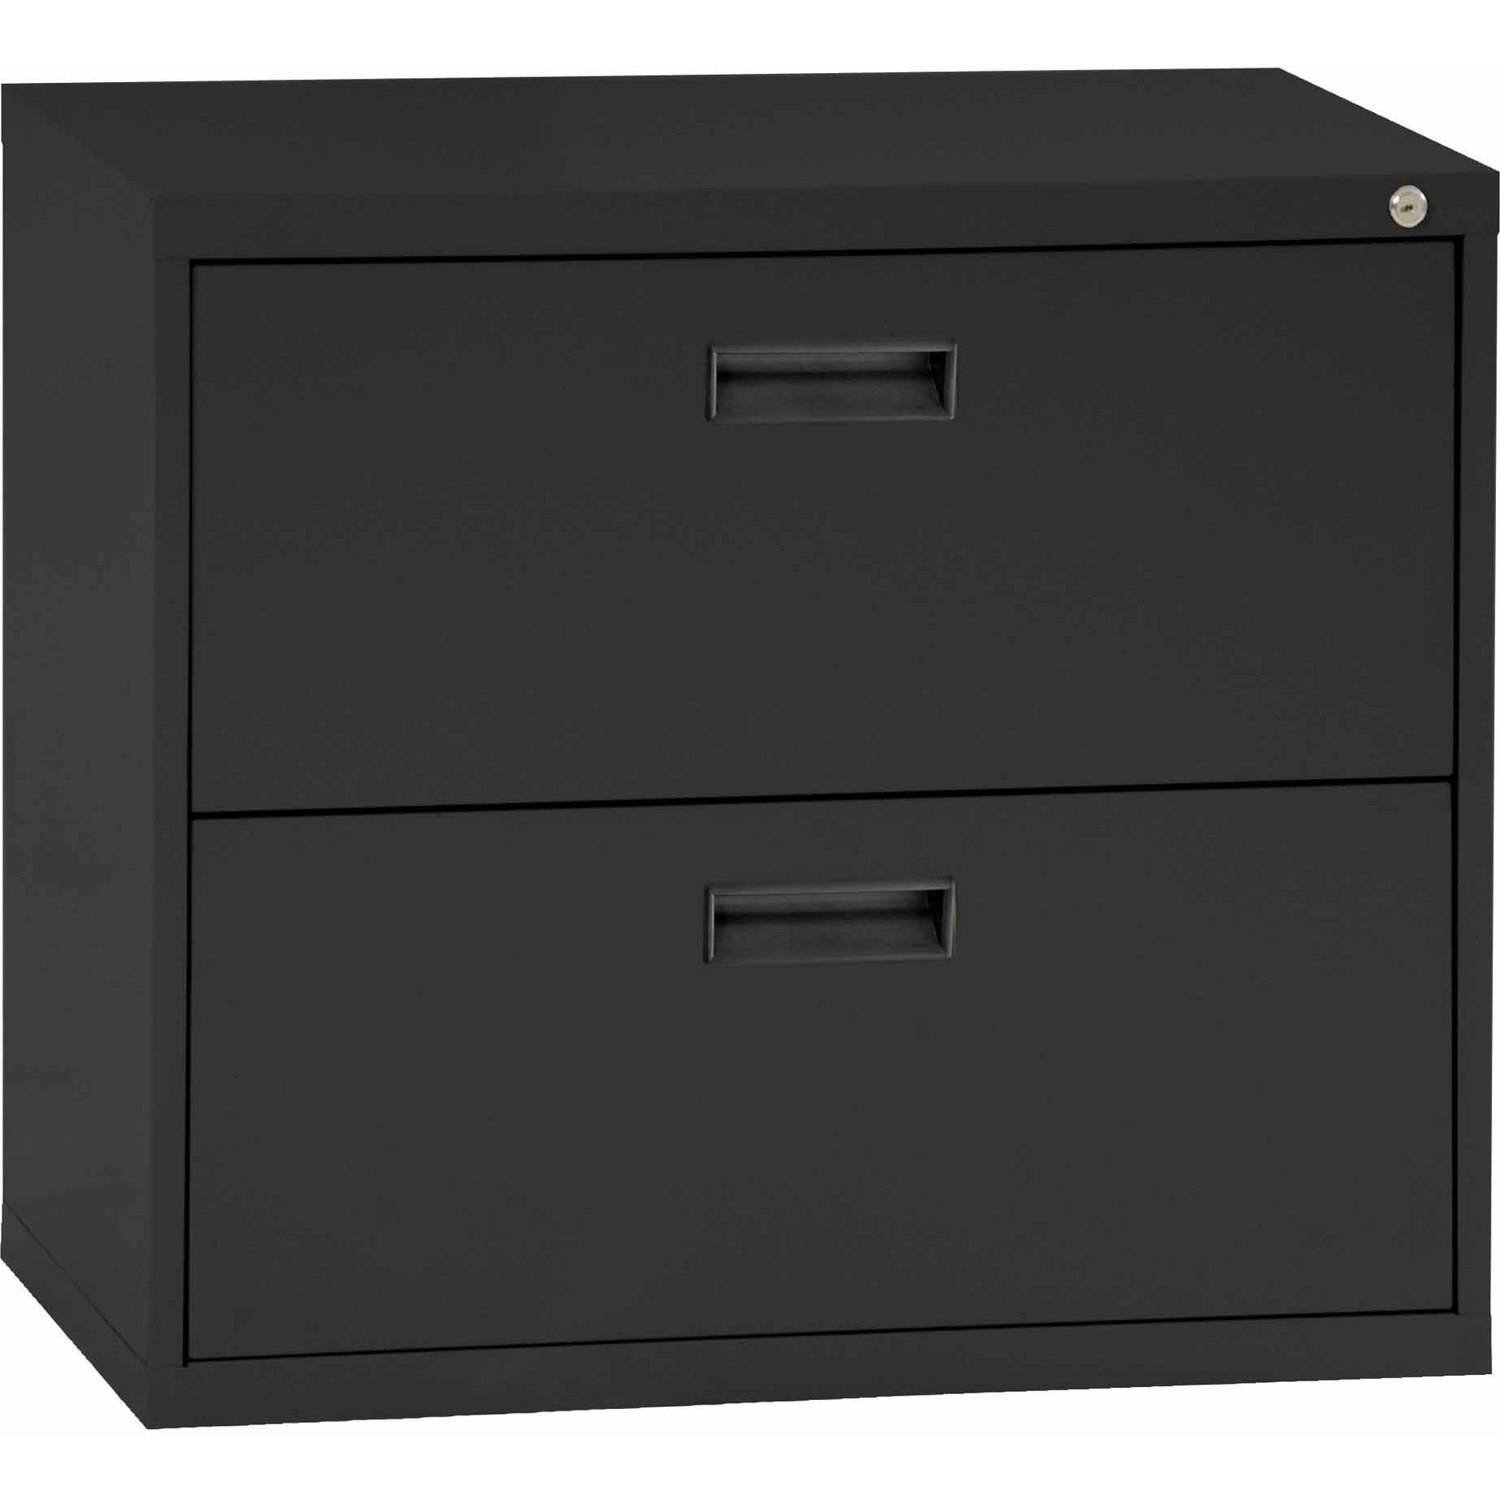 lateral file cabinet. Sandusky Steel Lateral File Cabinet With Plastic Handle, 2 Drawers, E202L-09 Lateral File Cabinet L